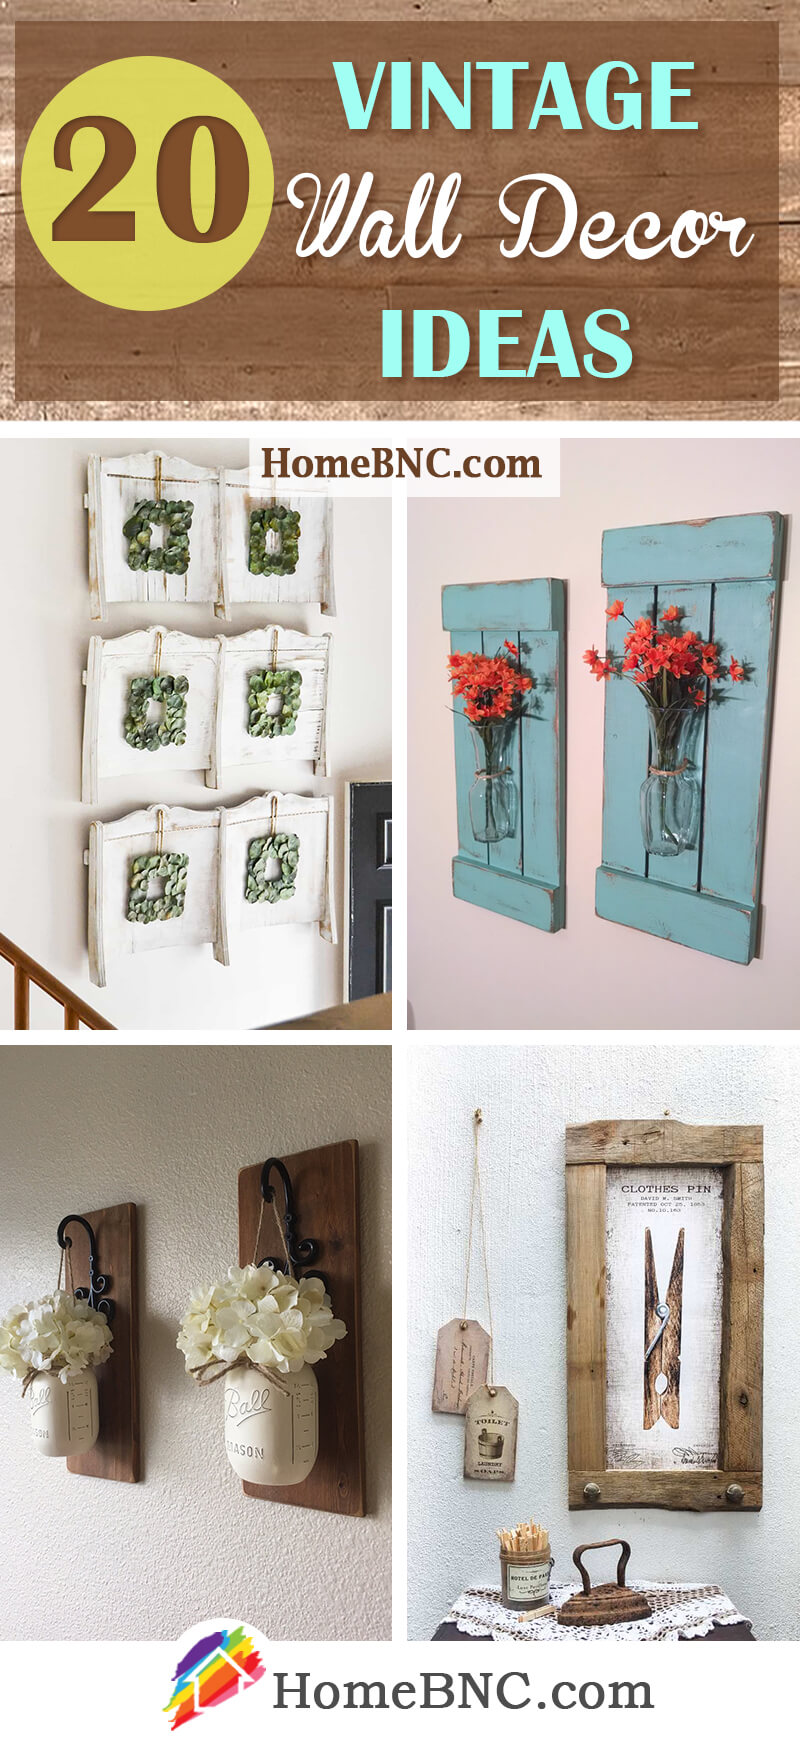 20 Vintage Wall Decor Ideas That Will Make Your Walls Unforgettable